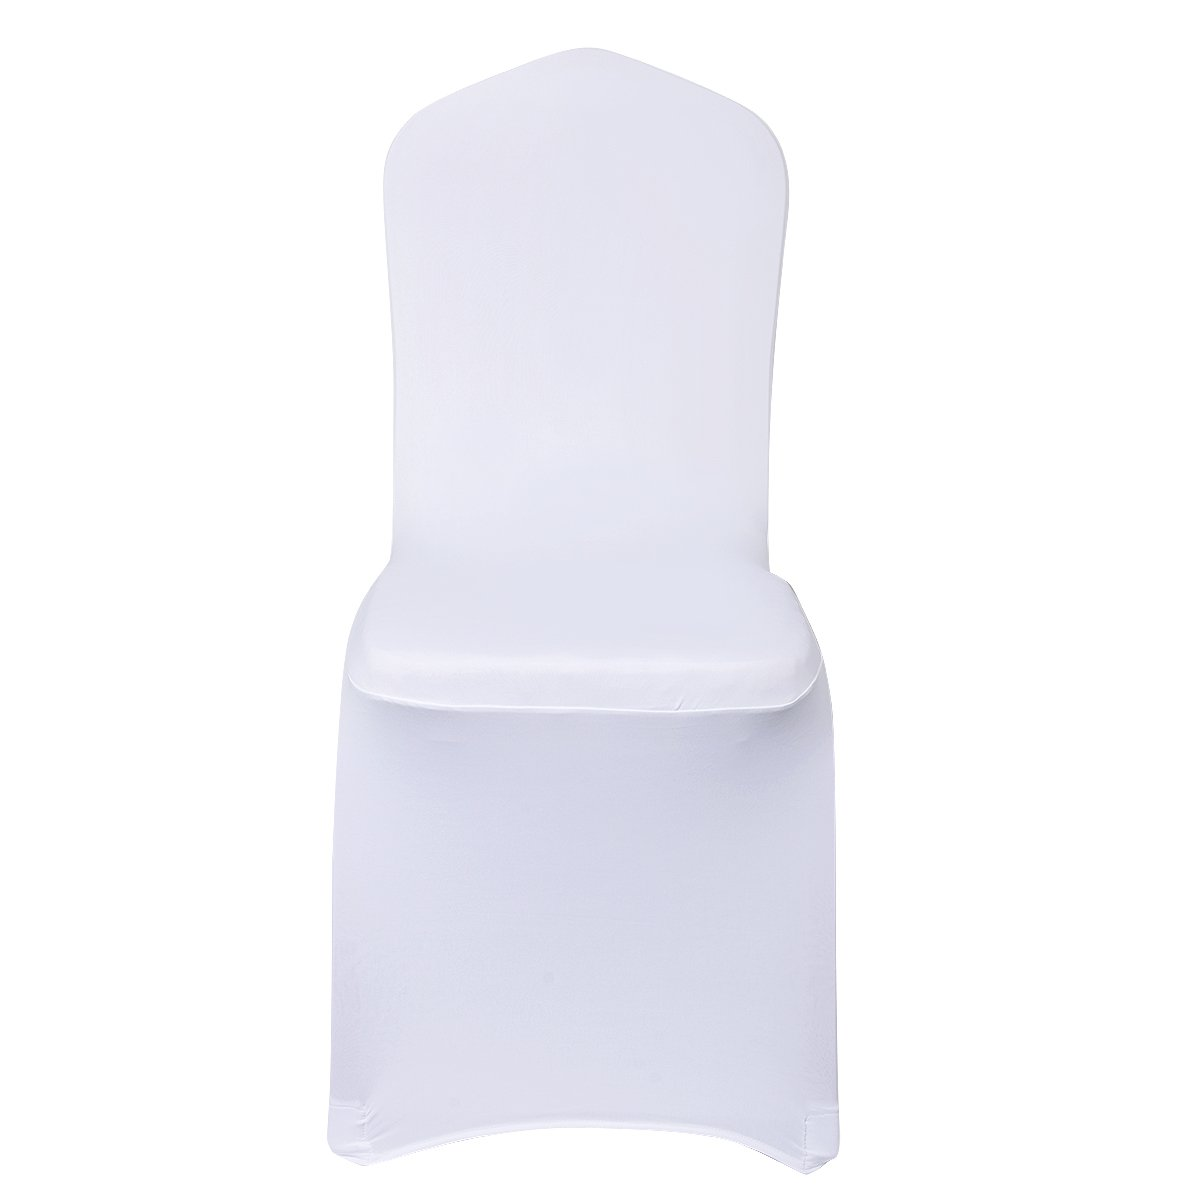 White CUSFULL 10 Pcs Polyester Spandex Banquet Wedding Party Chair Covers Universal